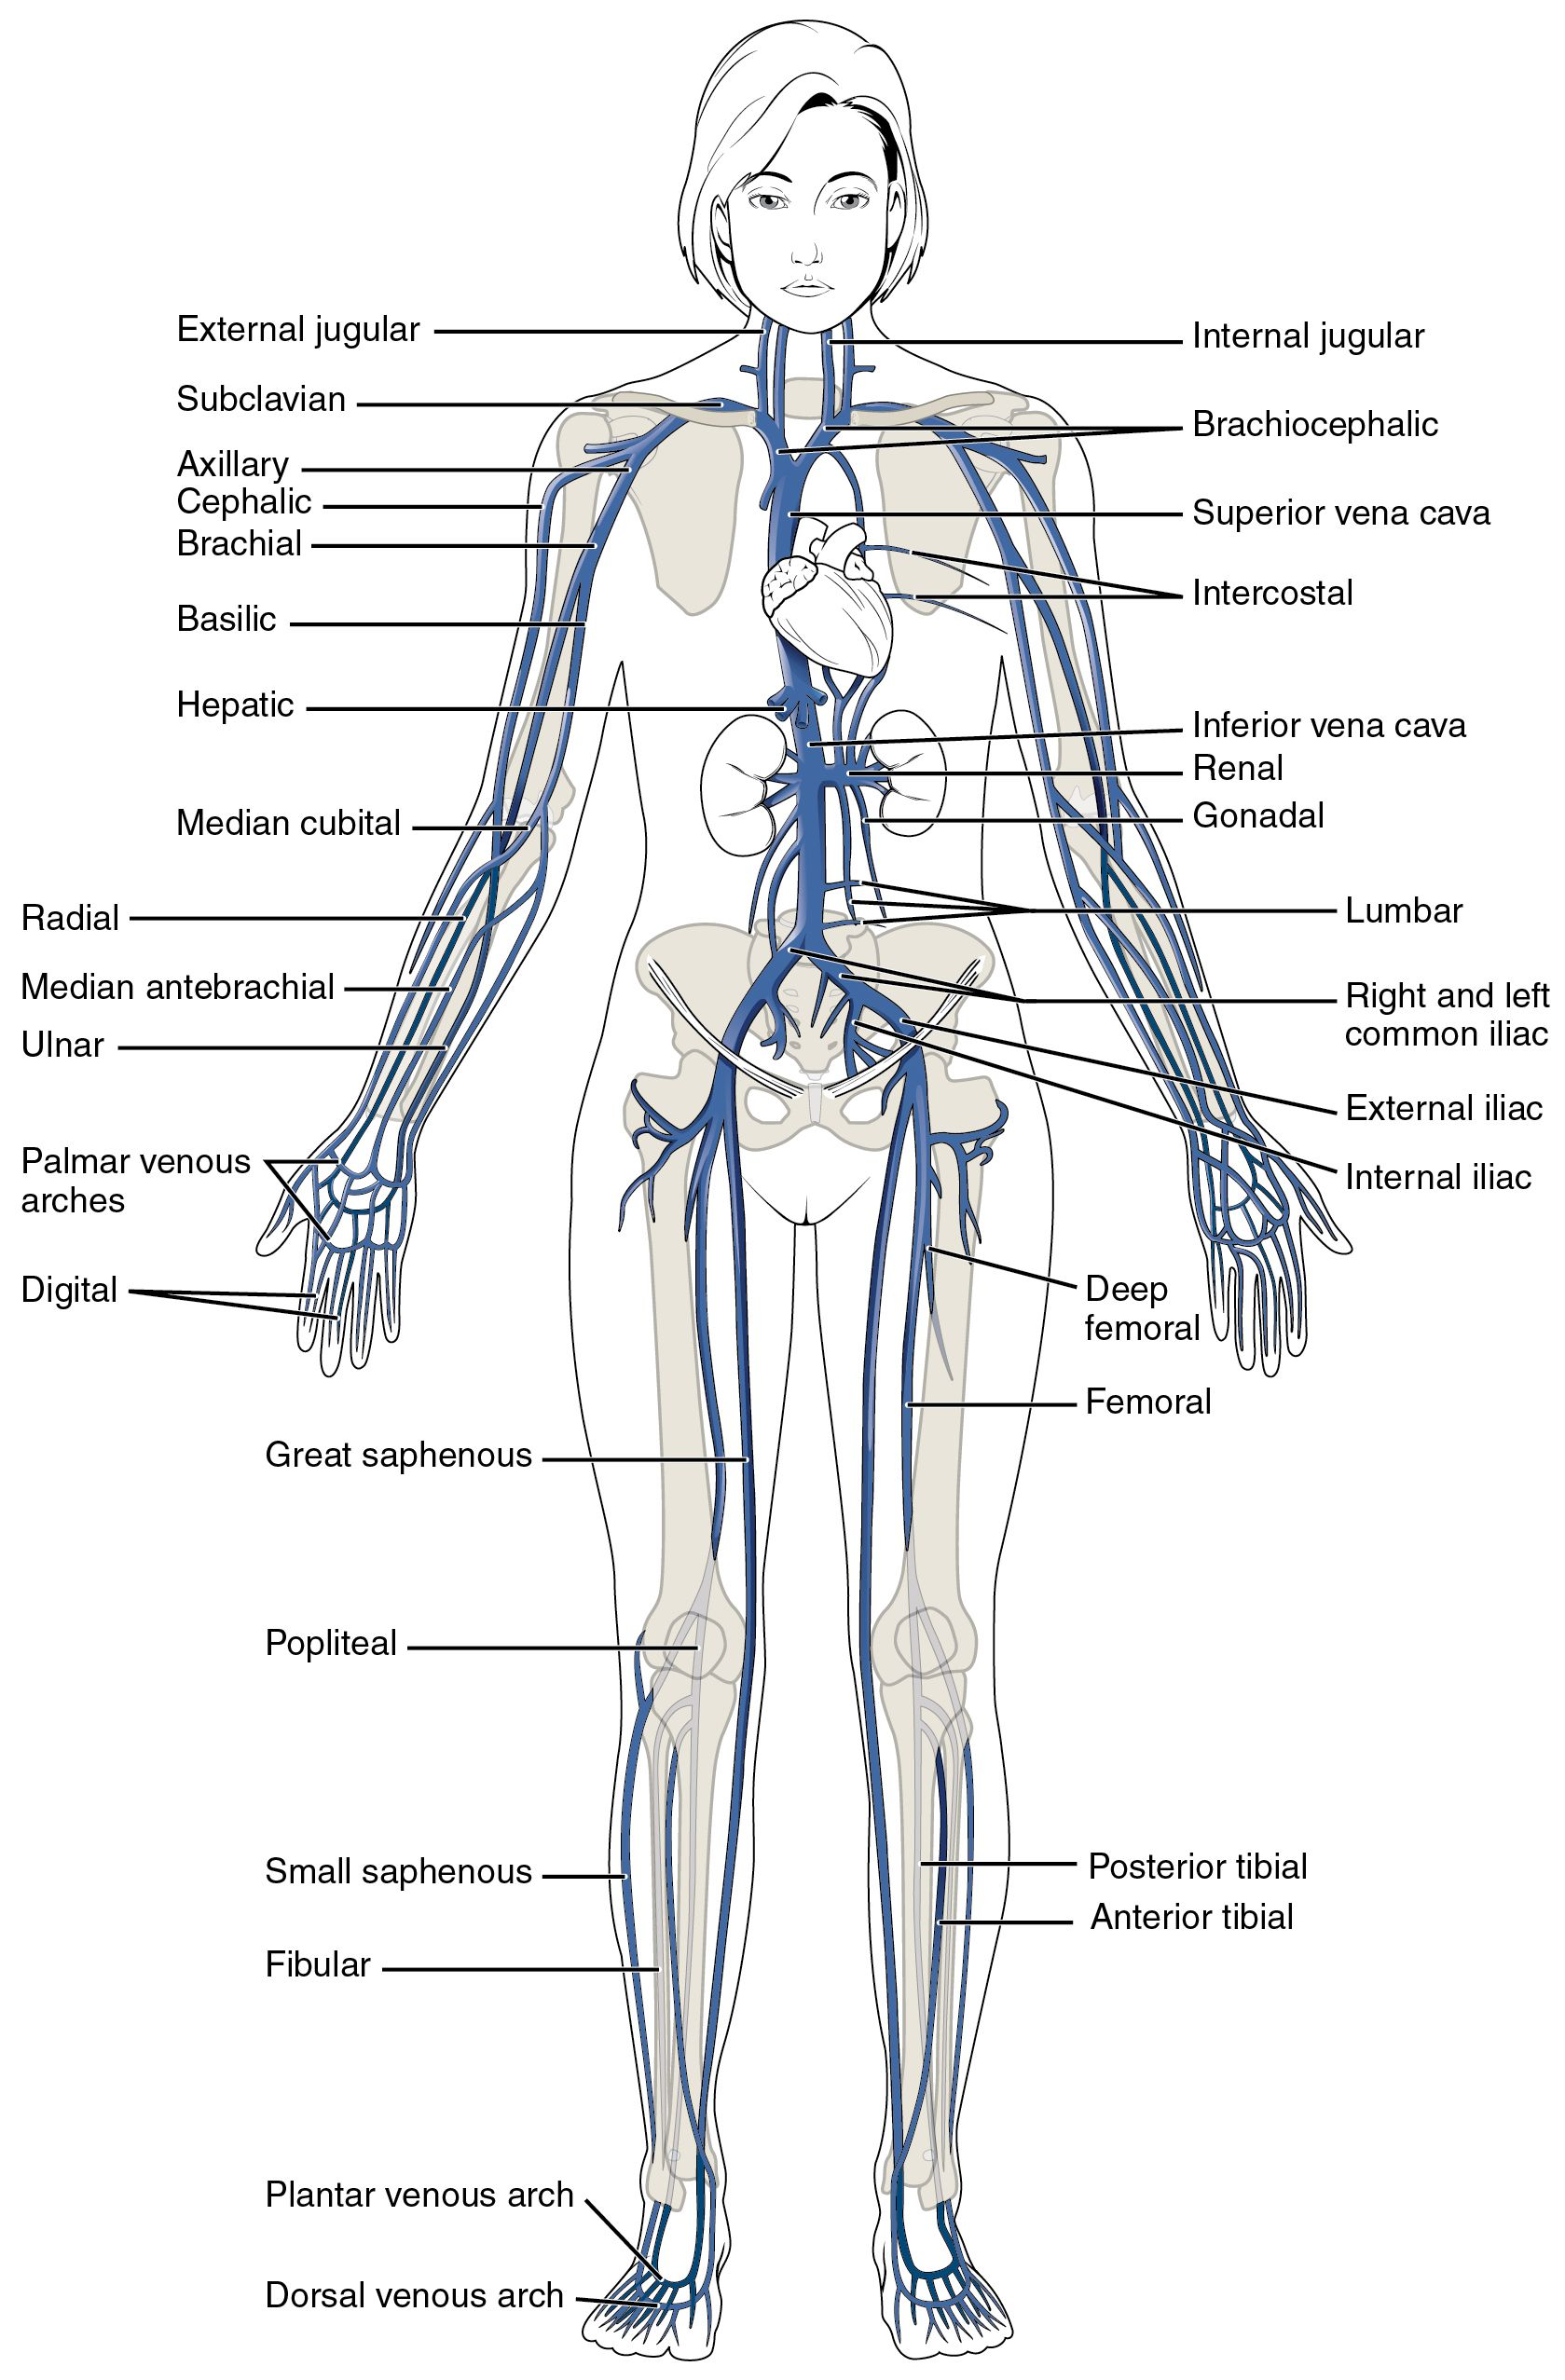 medium resolution of this diagram shows the major veins in the human body